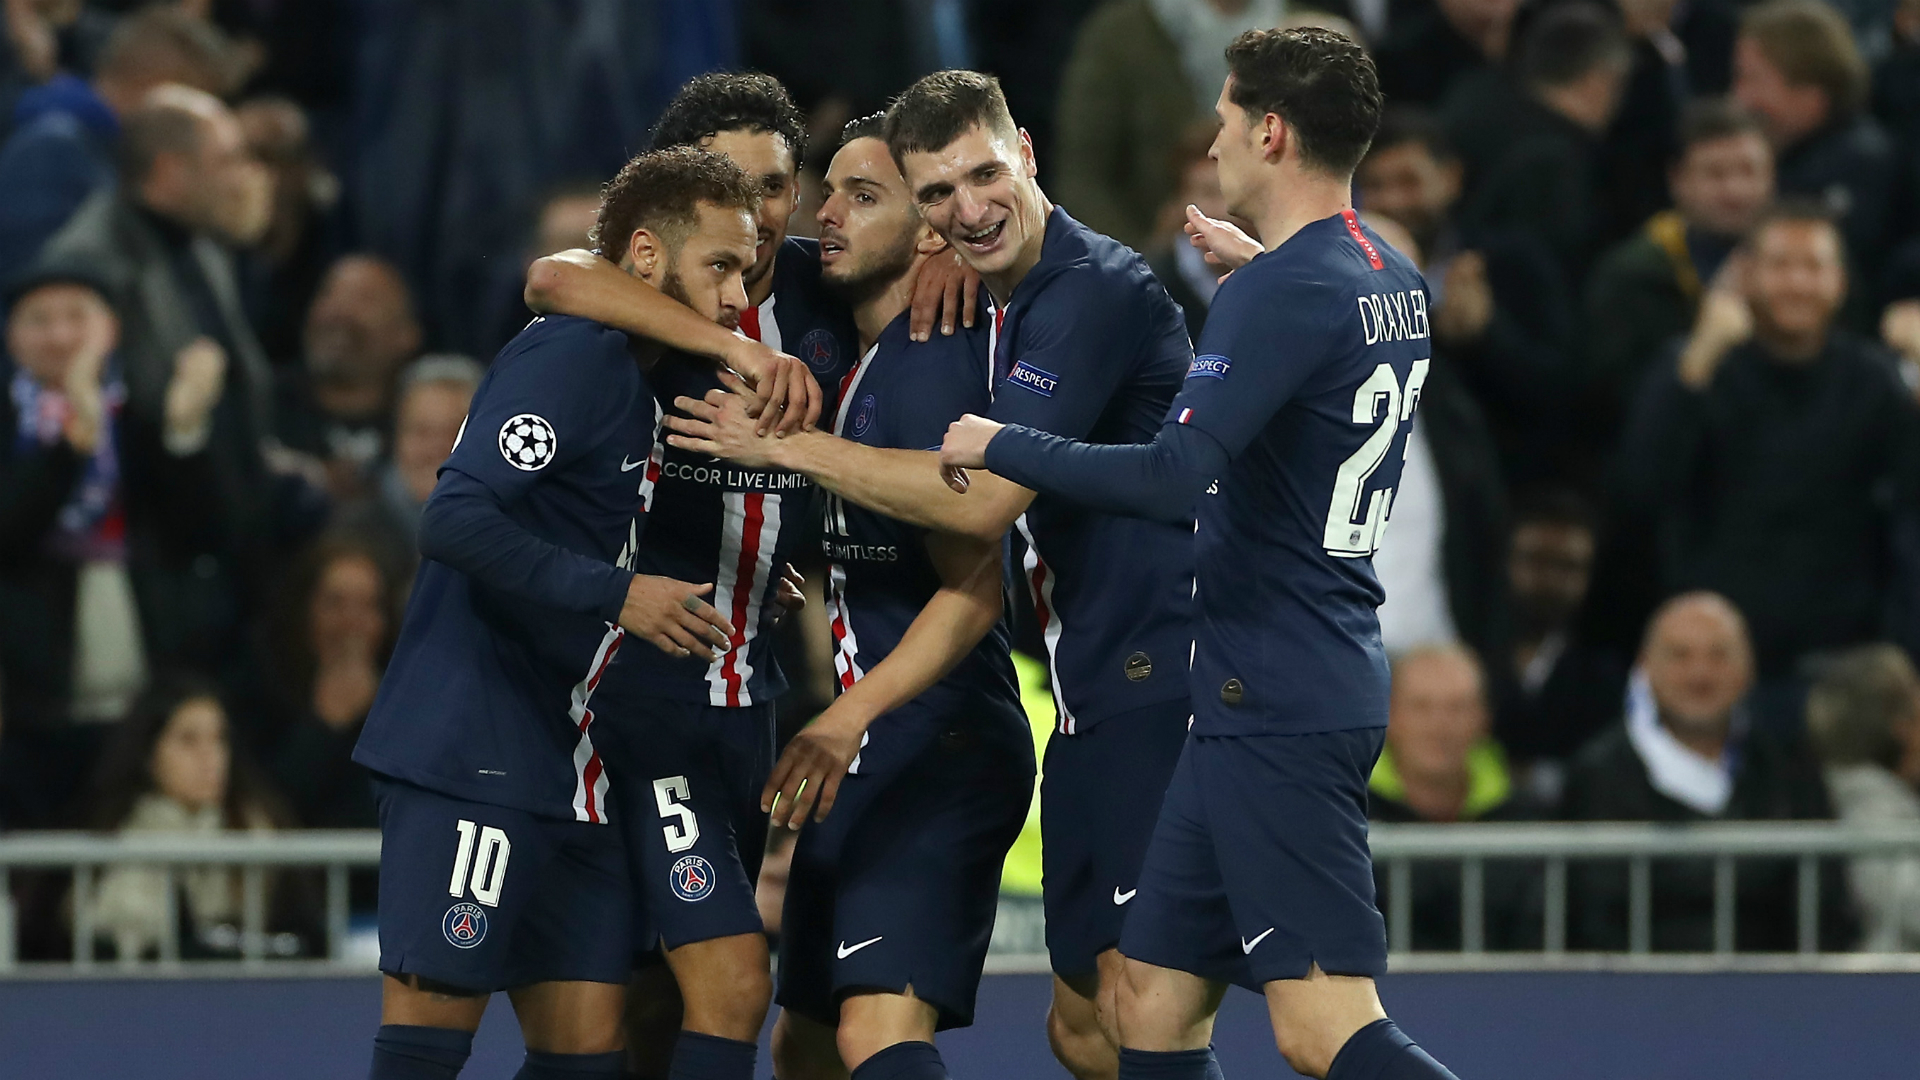 Sub-plots old and new on display in barnstorming Real Madrid-PSG classic